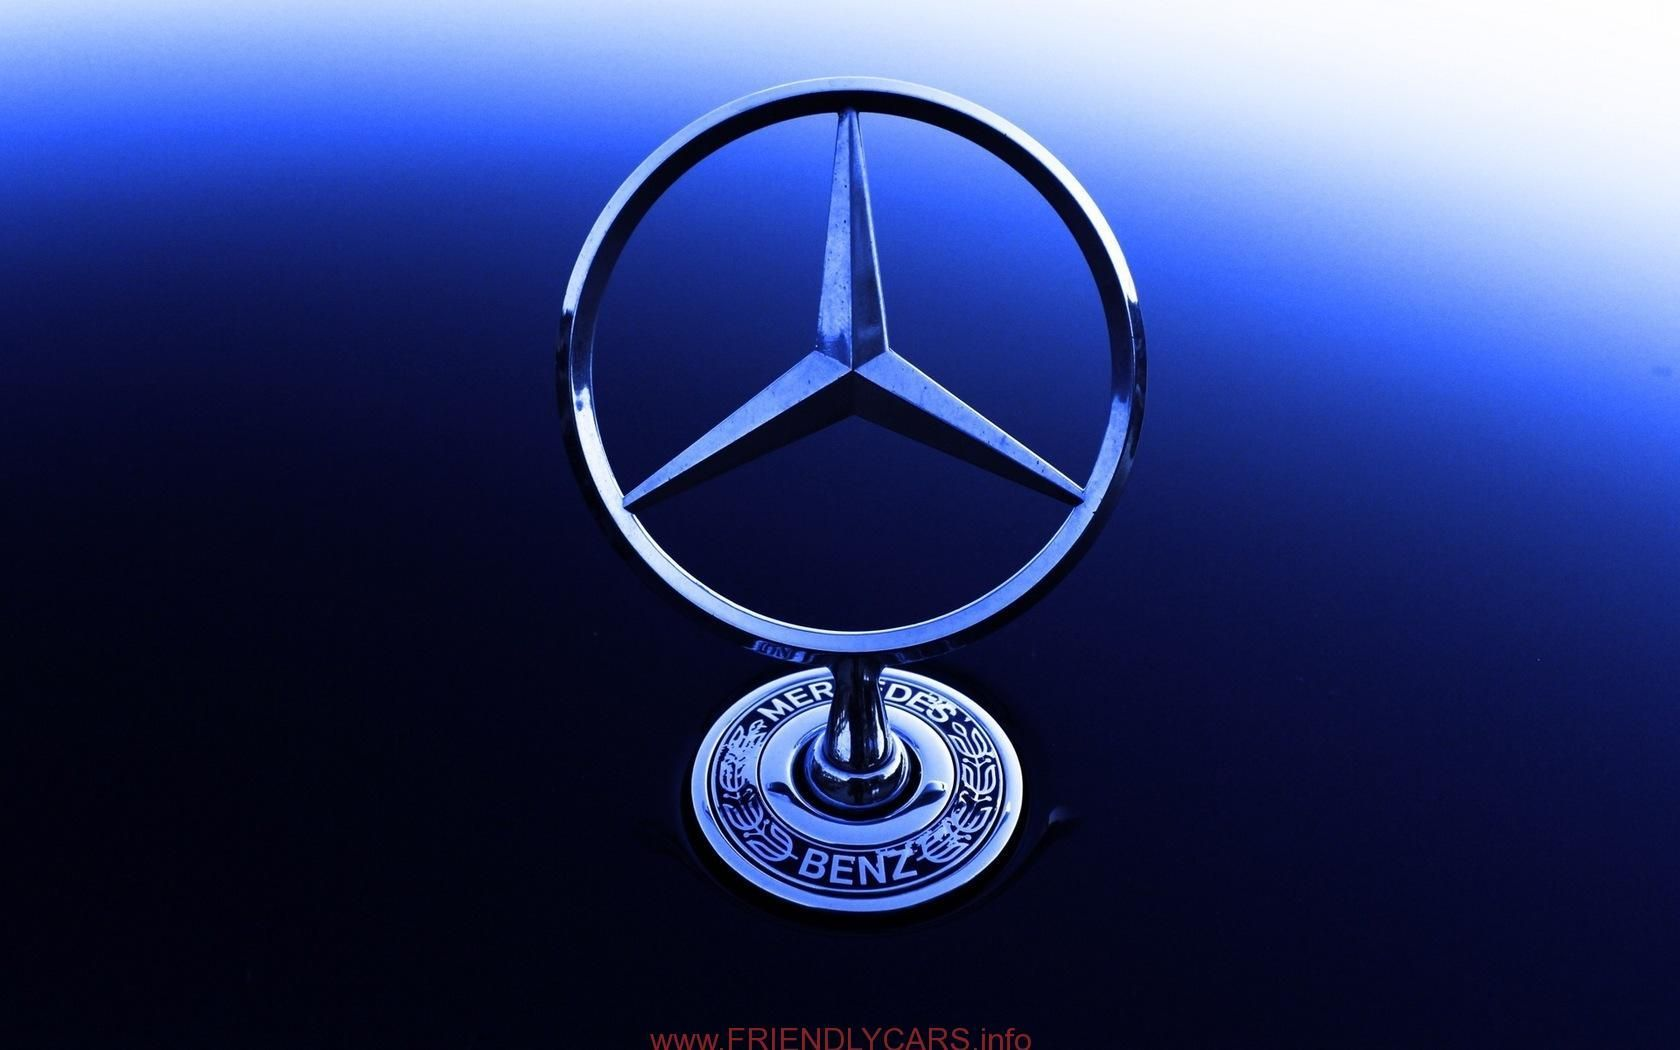 Cool mercedes logo wallpaper iphone car images hd roundup 40 amazing cool mercedes logo wallpaper iphone car images hd roundup 40 amazing mercedes benz hd wallpapers crispme voltagebd Gallery